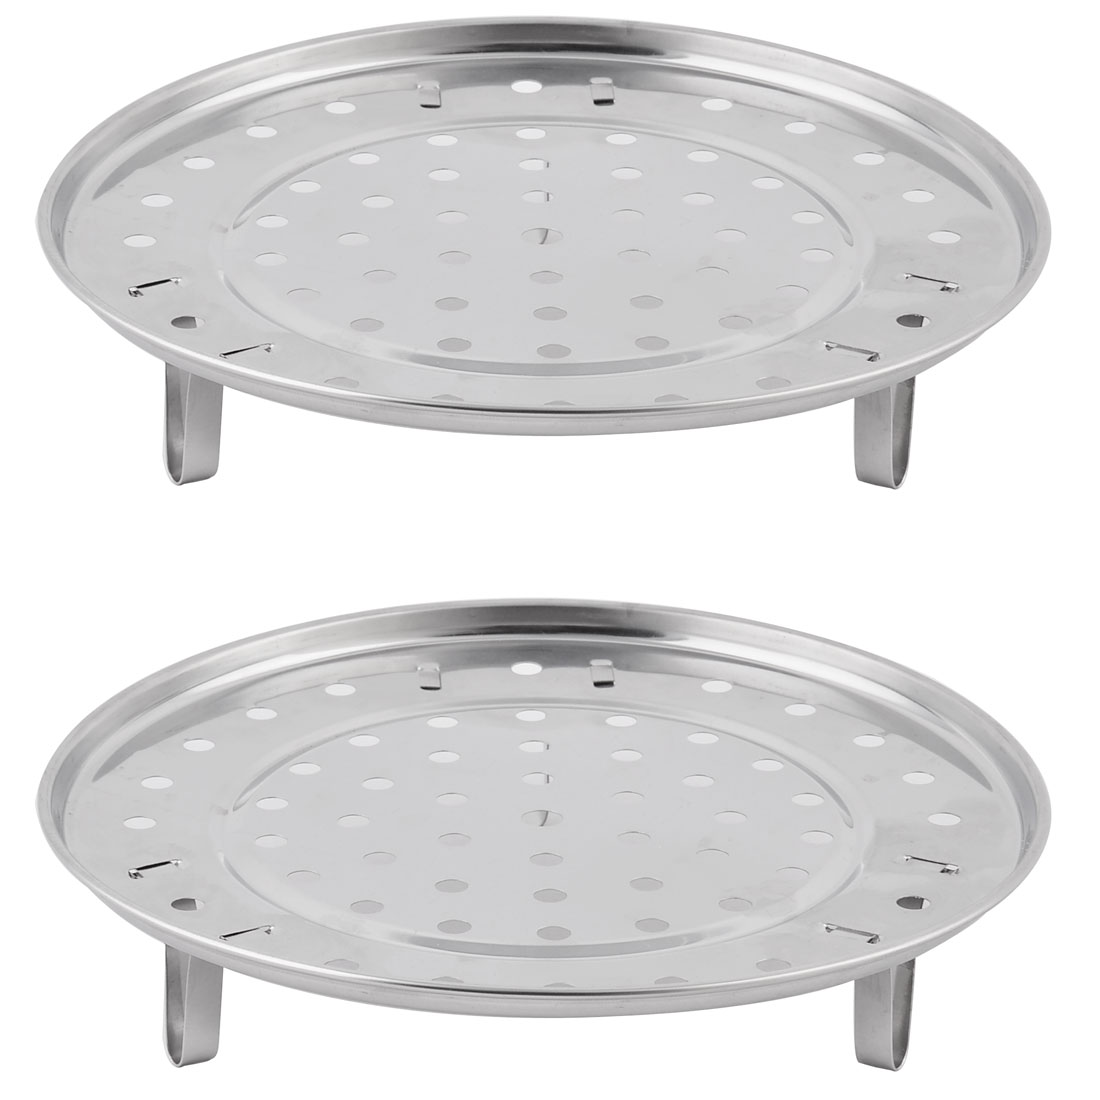 Household Stainless Steel Steaming Rack Tray Stand Cooker Silver Tone 21.5cm Dia 2 PCS